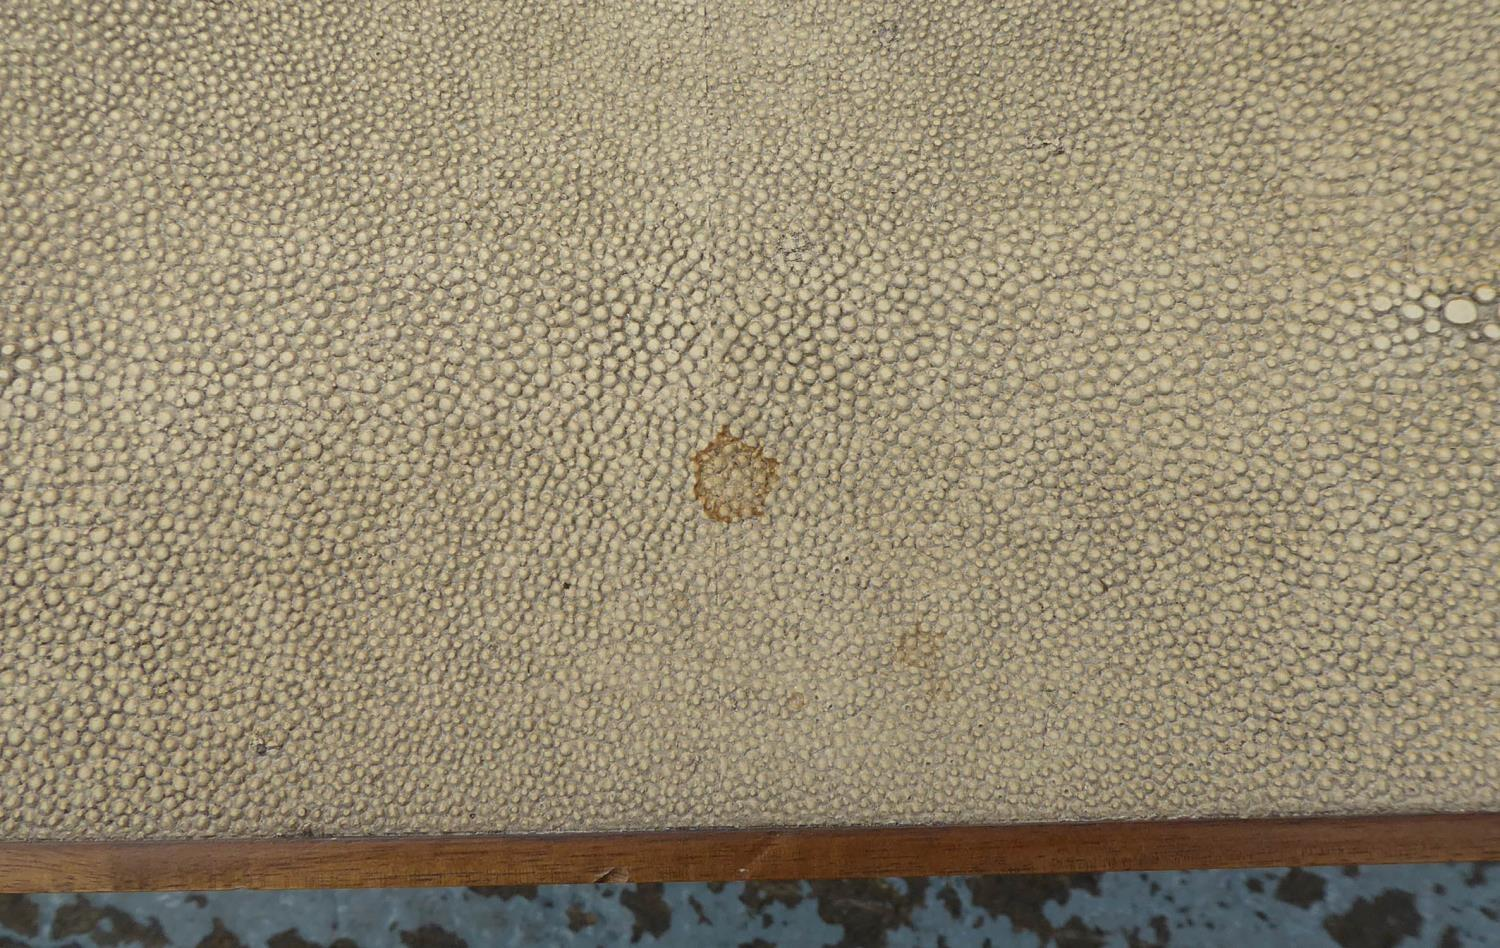 NEST OF TABLES, contemporary, faux shagreen finish, 137.5cm x 67cm x 49cm at largest. - Image 5 of 6